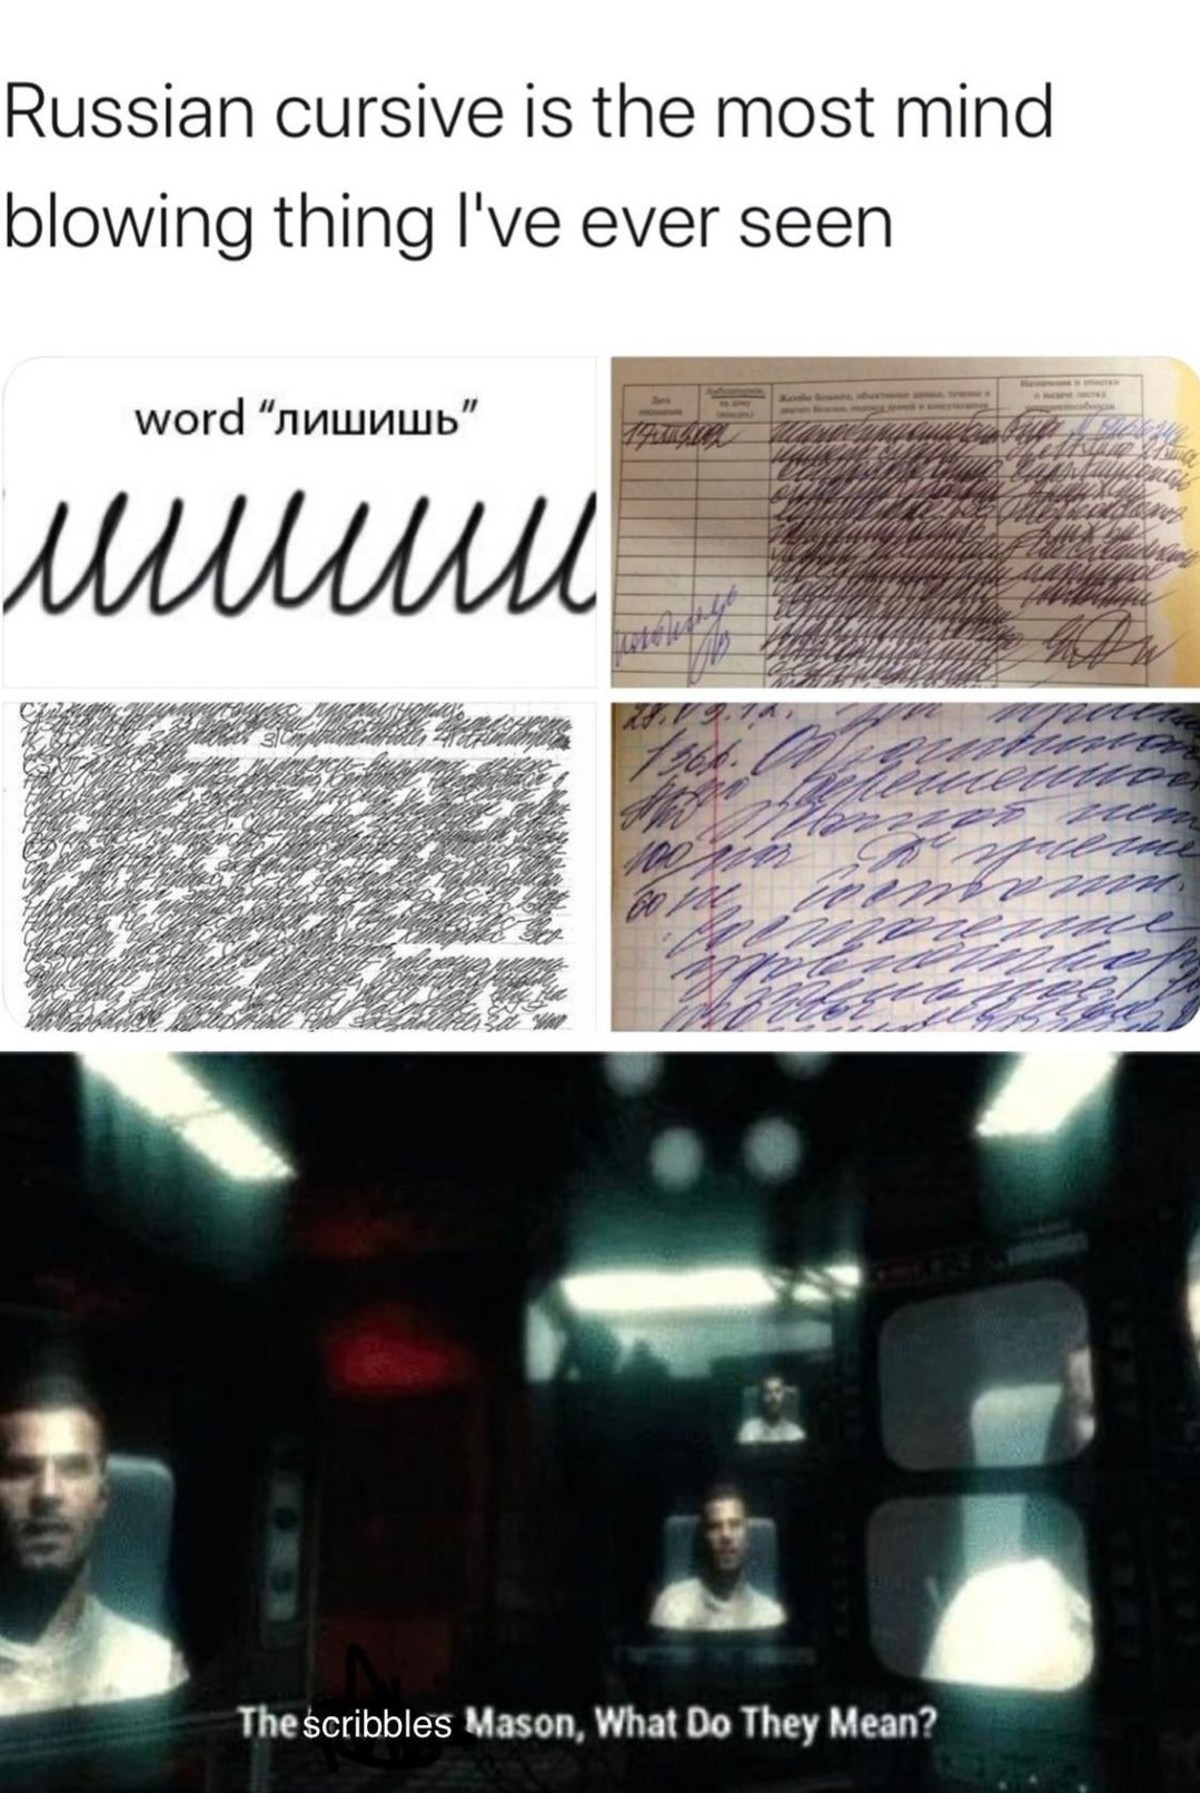 Russian Cursive. .. I fail to understand how this isnt jsut one giant joke the russians are keeping up